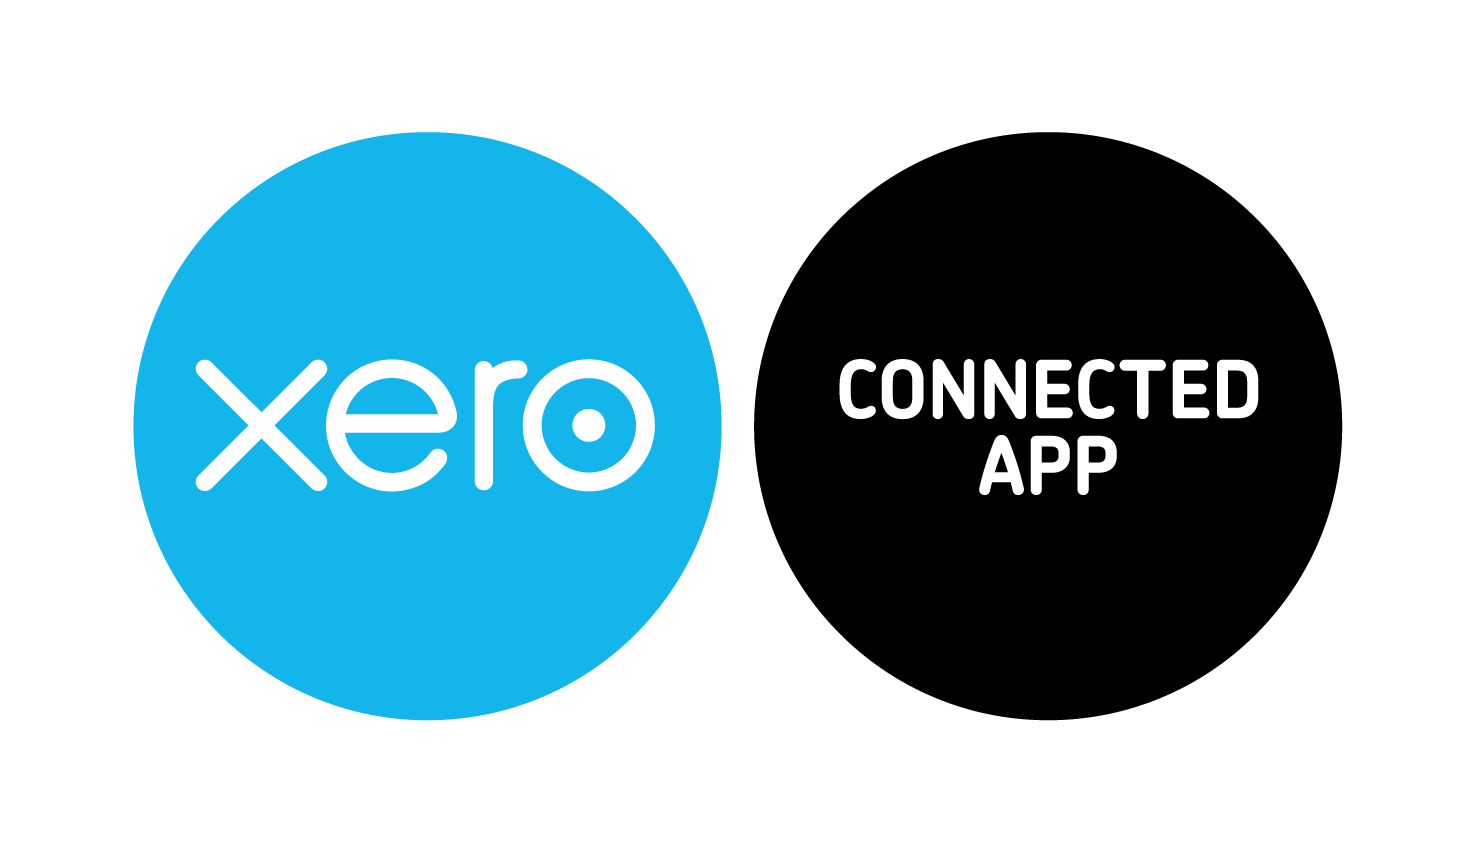 xero-connected-app-logo-hires-RGB-1